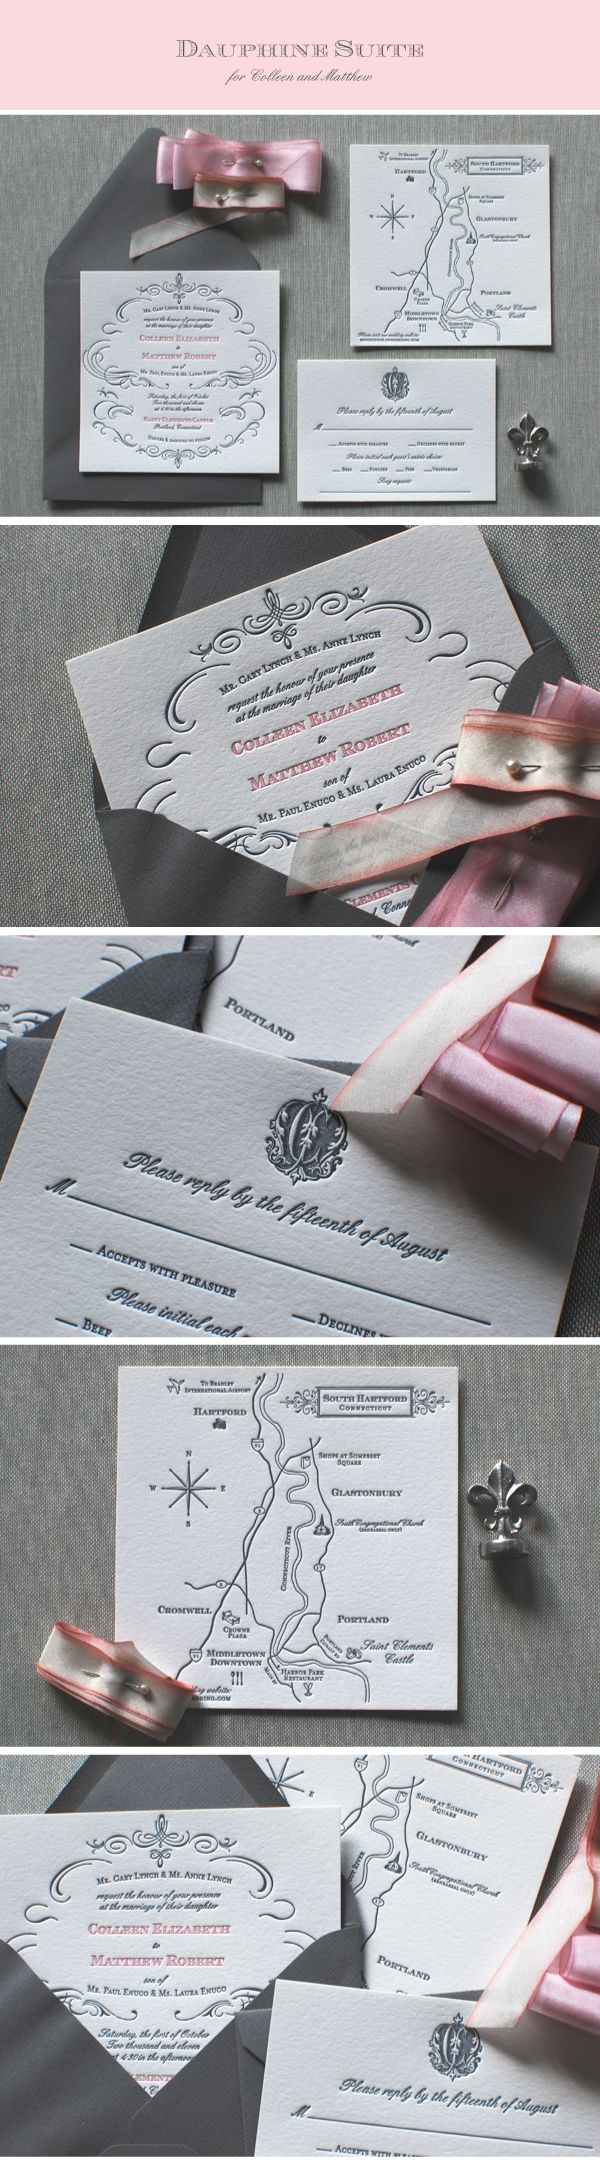 crane stationery crane wedding invitations This French inspired wedding suite printed on Pearl Crane Lettra is so classic and elegant